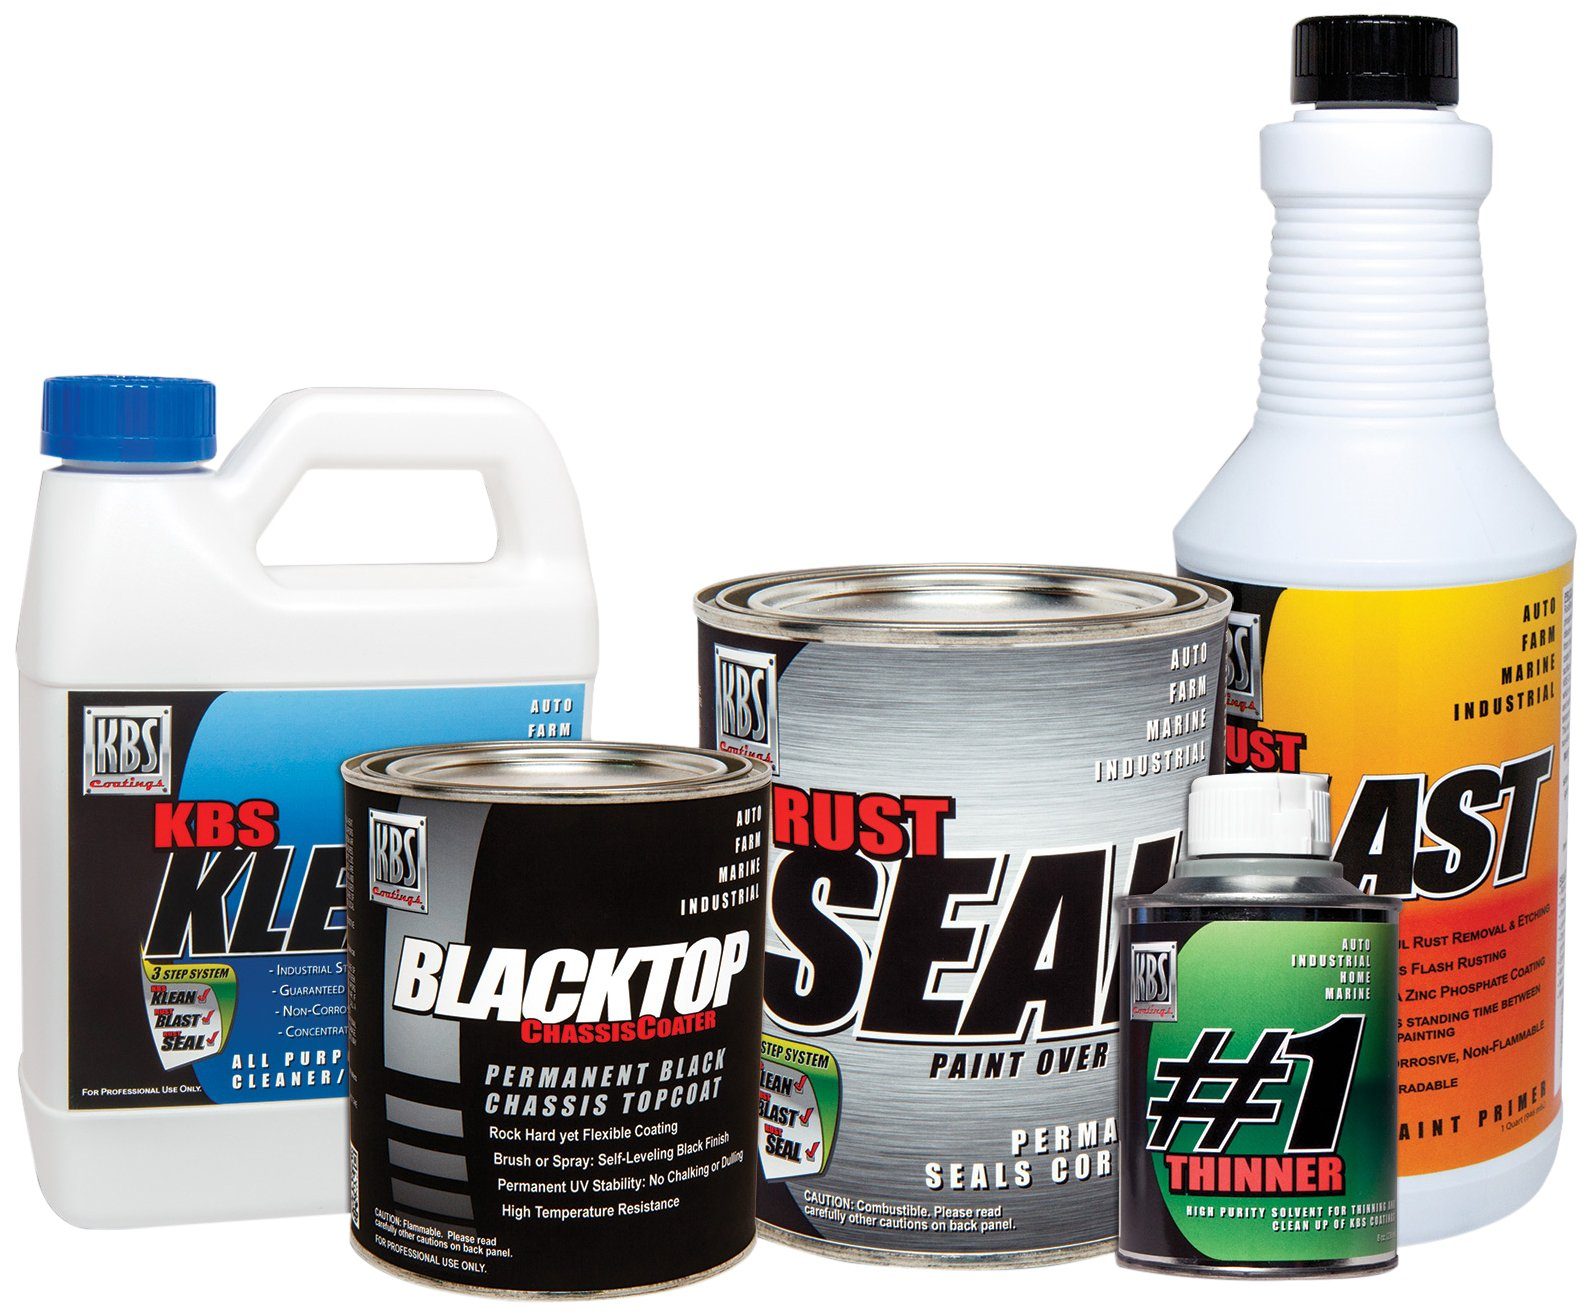 KBS Coatings 5750201 Satin Black/Gloss Black All-in-One Chassis Paint Kit, Preps and Coats Entire Car or Truck Frame